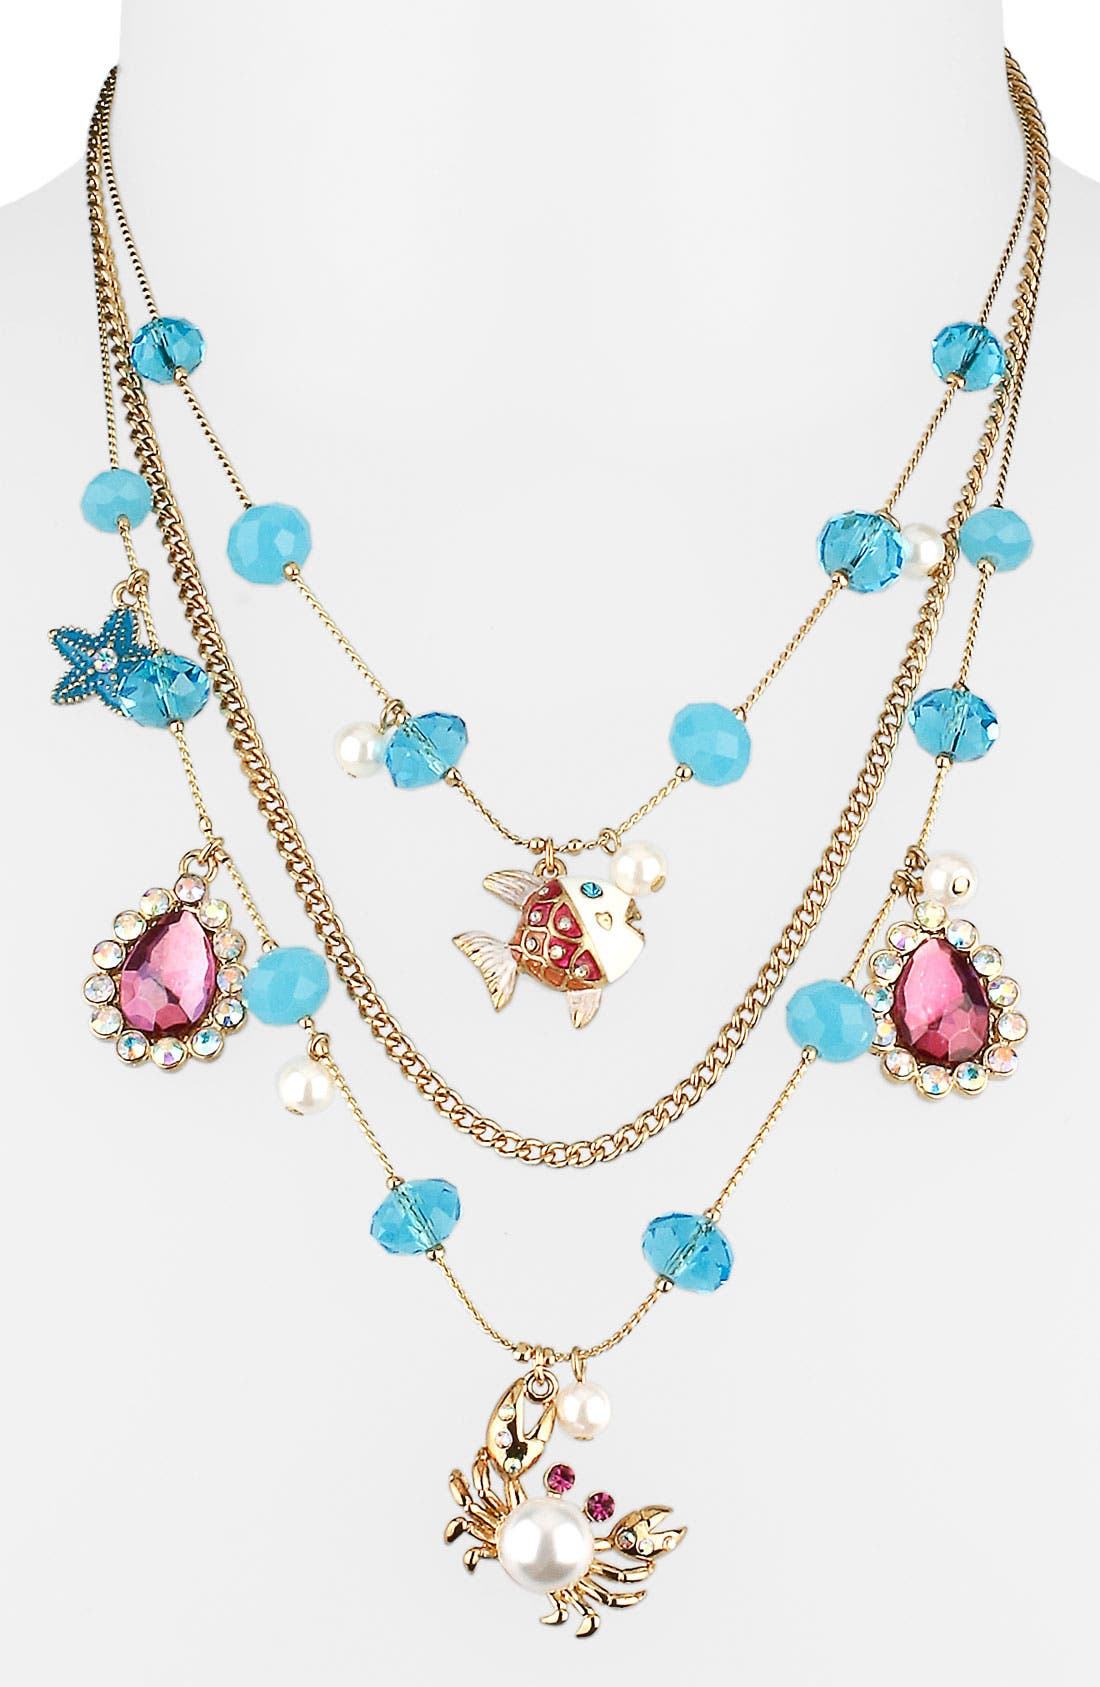 Main Image - Betsey Johnson 'Sea Excursion' Triple Strand Illusion Necklace